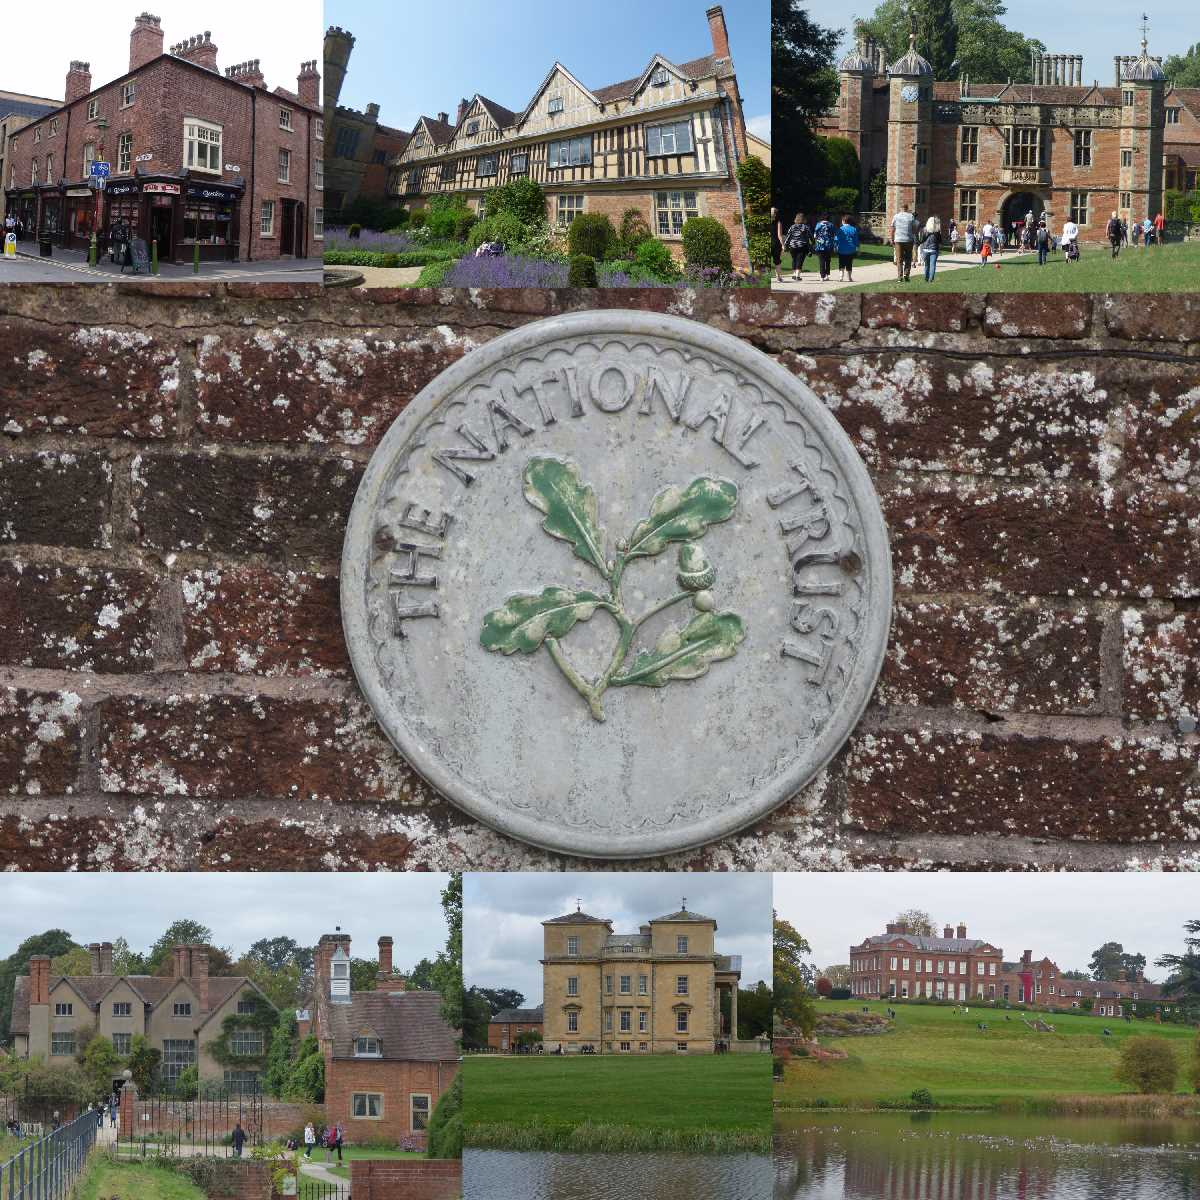 National Trust properties around the West Midlands region